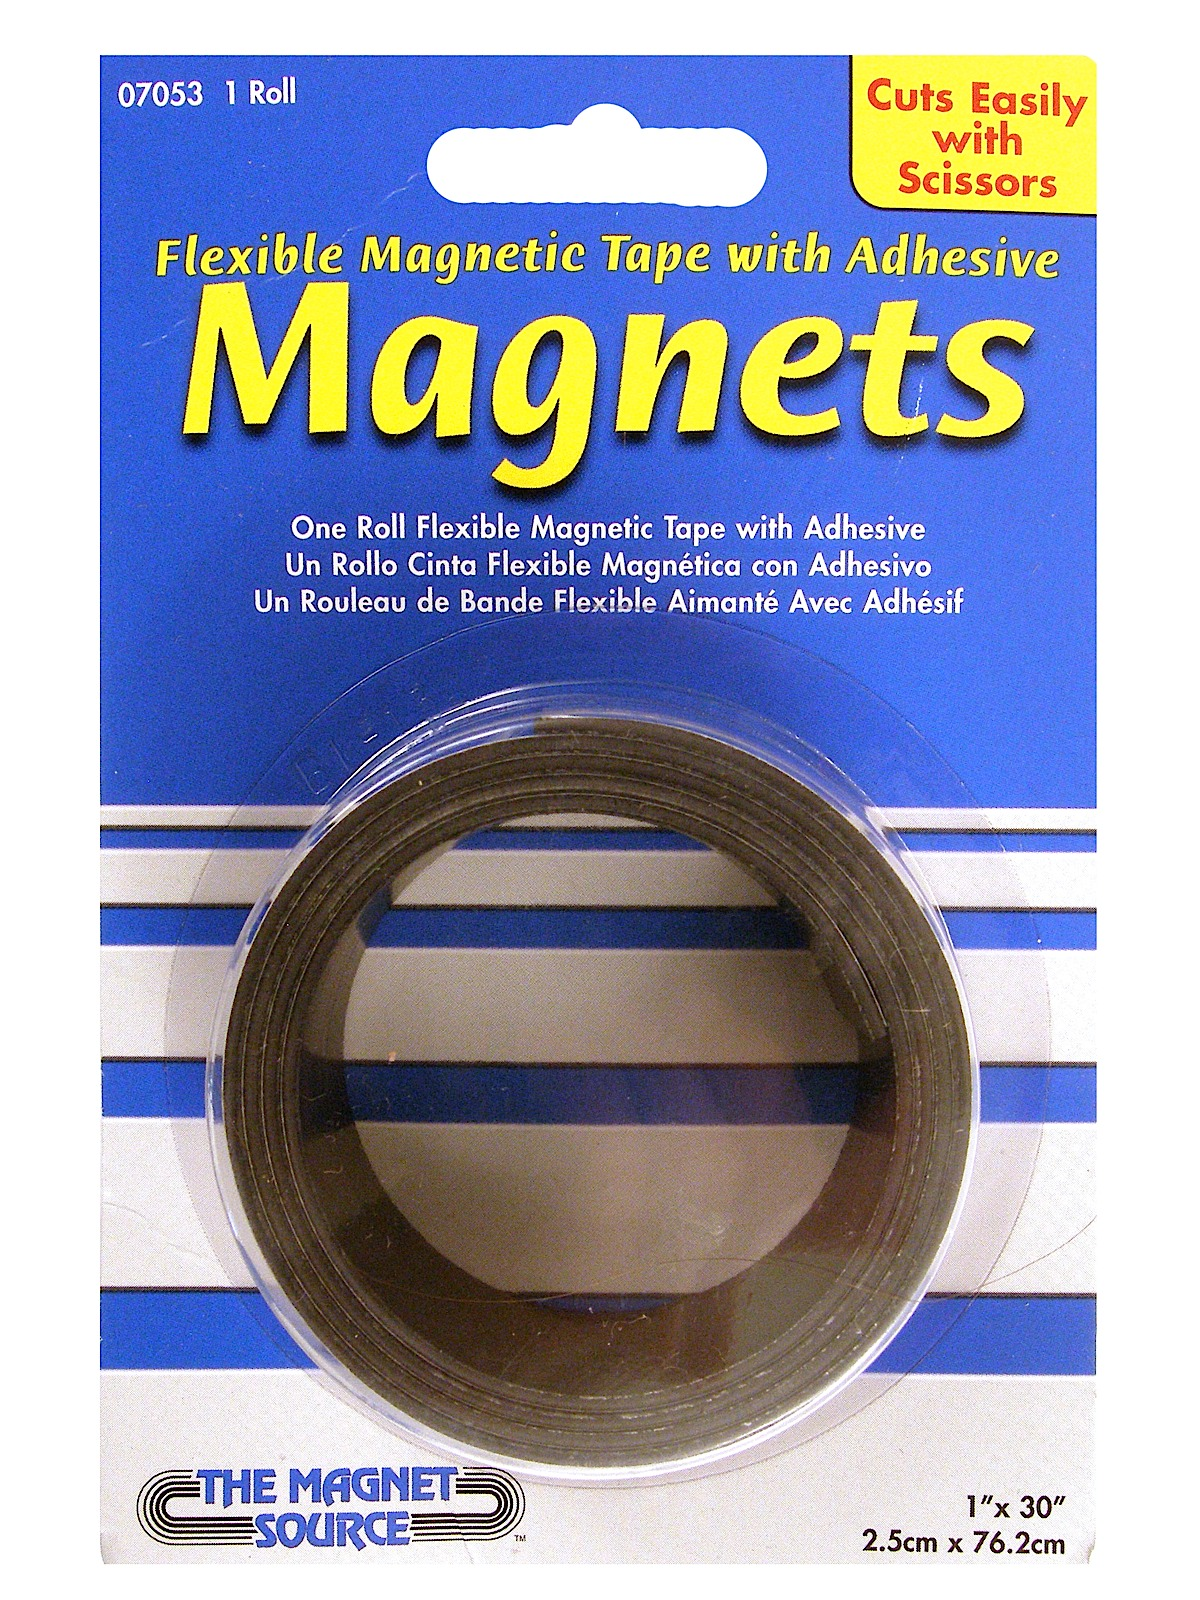 Flexible Magnetic Strips with Adhesive